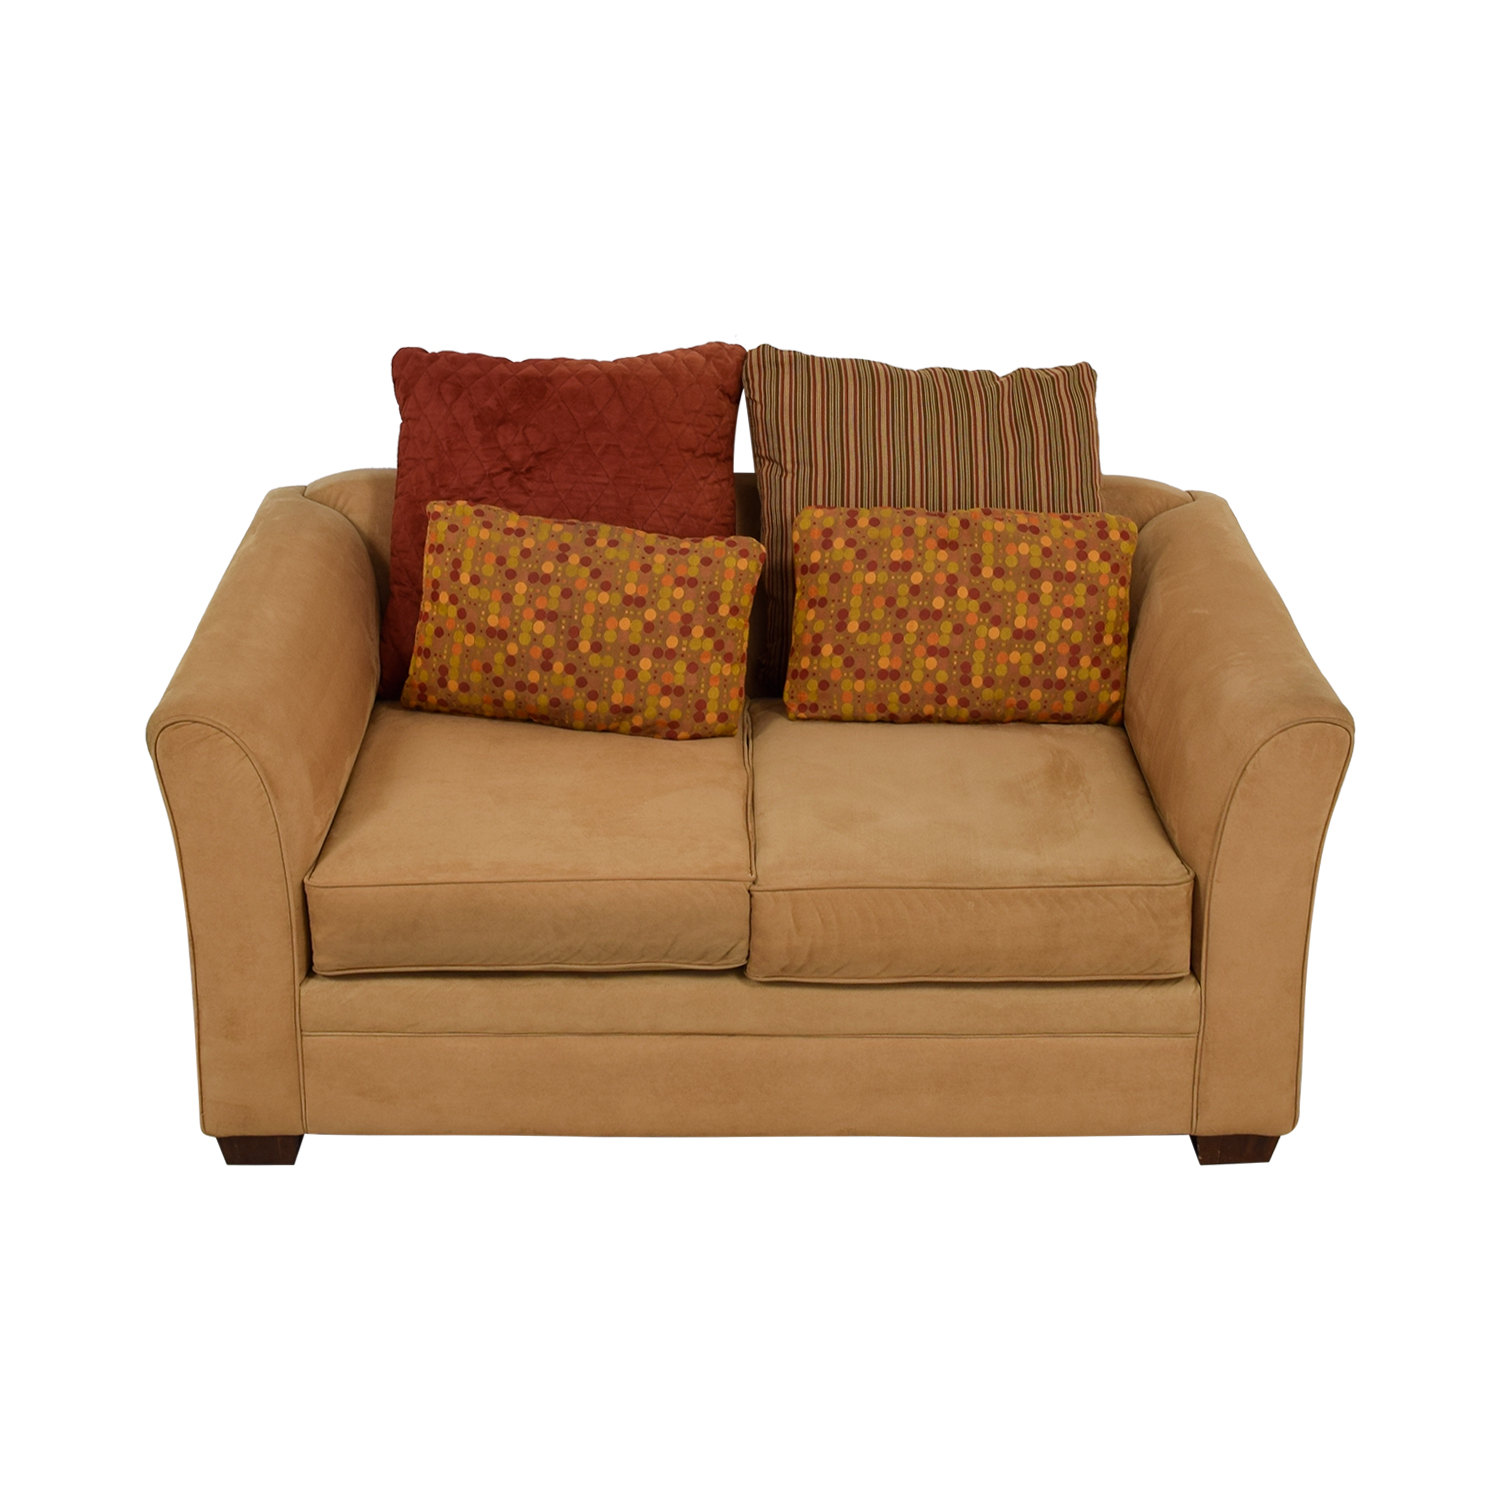 buy Raymour & Flanagan Raymour & Flanagan Camel Two-Cushion Loveseat online